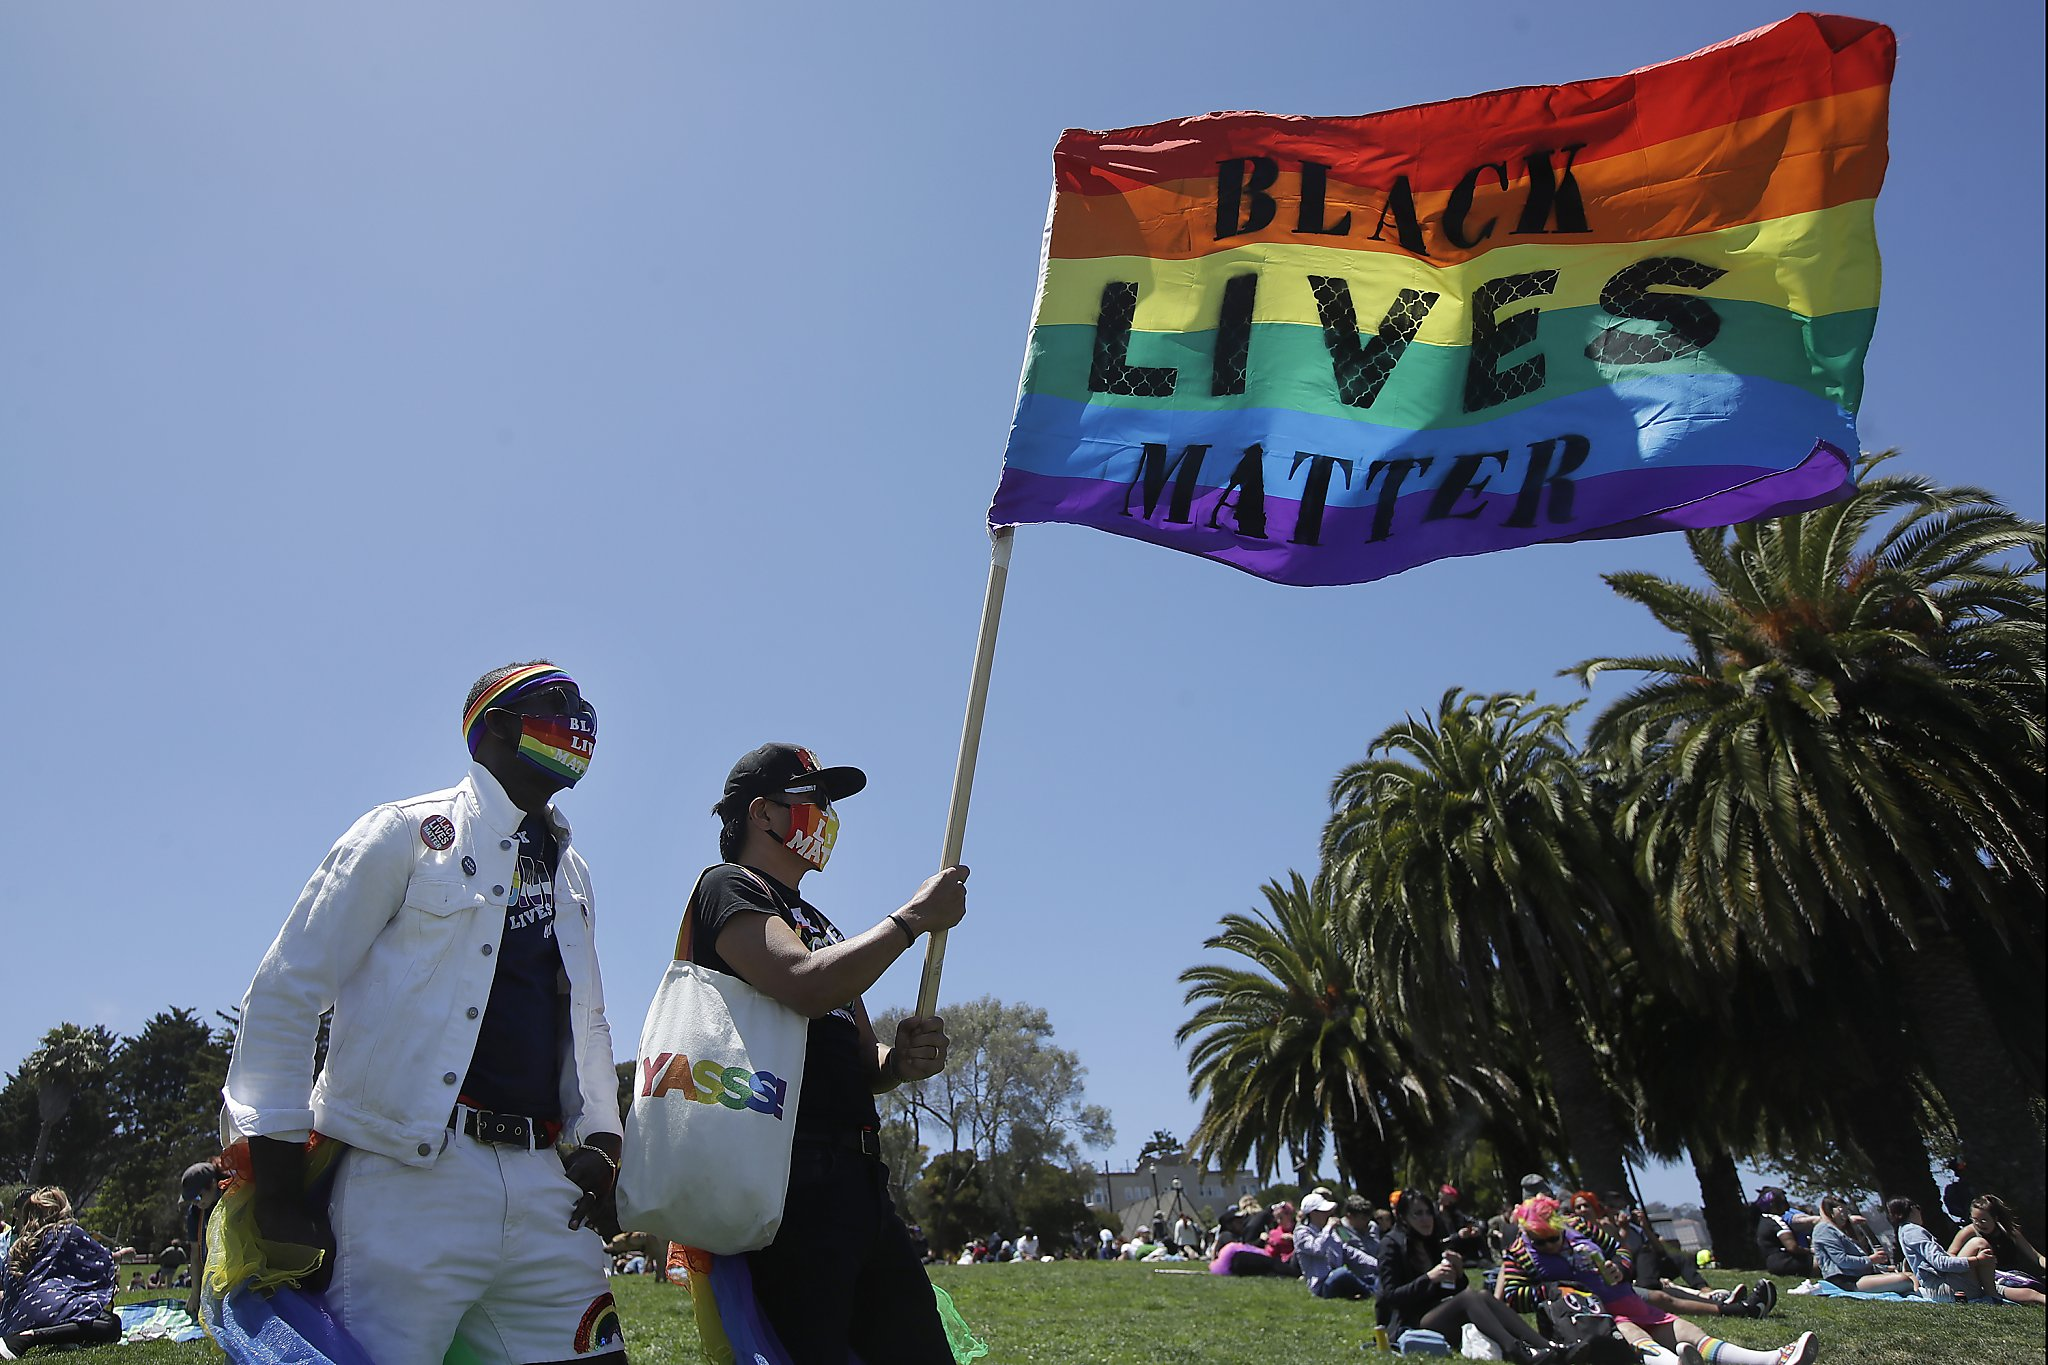 President of Sonoma County business group out after 'ALL lives matter' letter